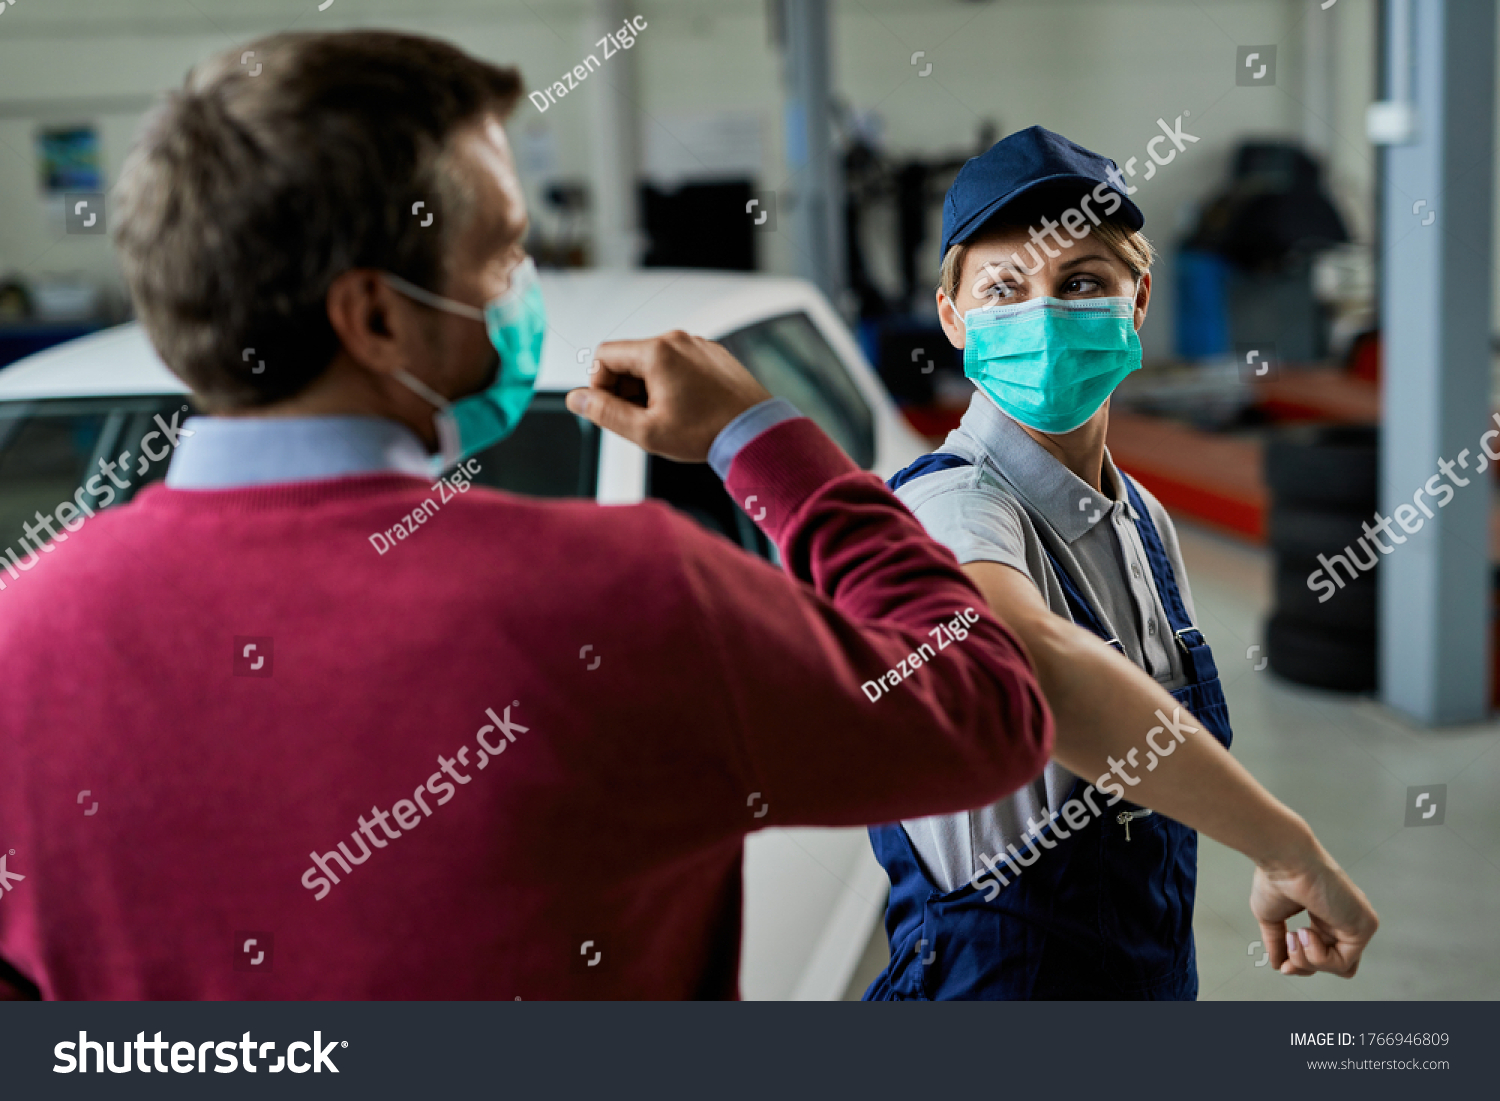 Female car mechanic and her customer greeting with elbows while wearing protective face masks in auto repair shop during coronavirus epidemic.  #1766946809